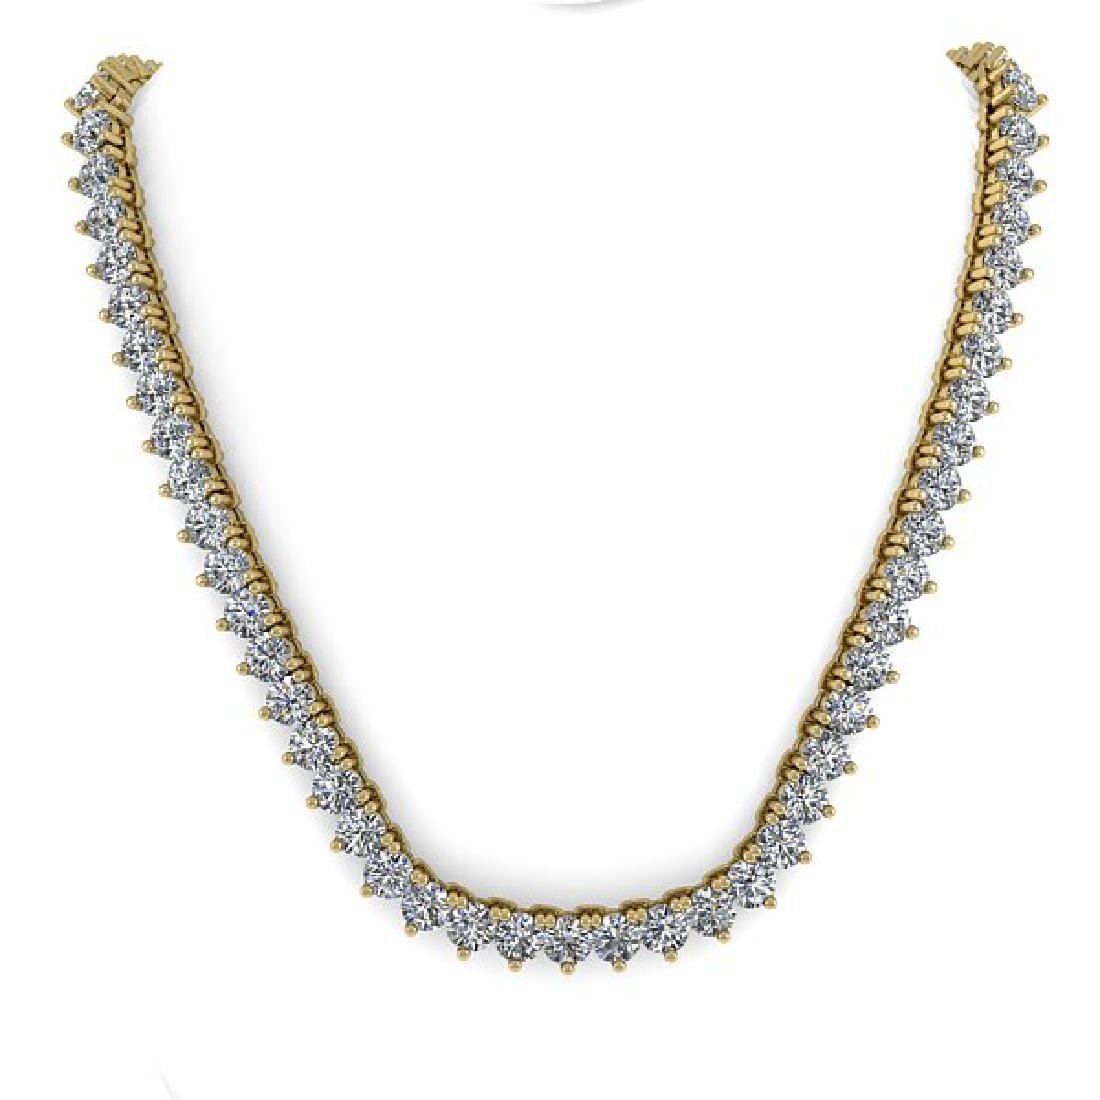 38 CTW Solitaire SI Diamond Necklace 18K Yellow Gold - 3